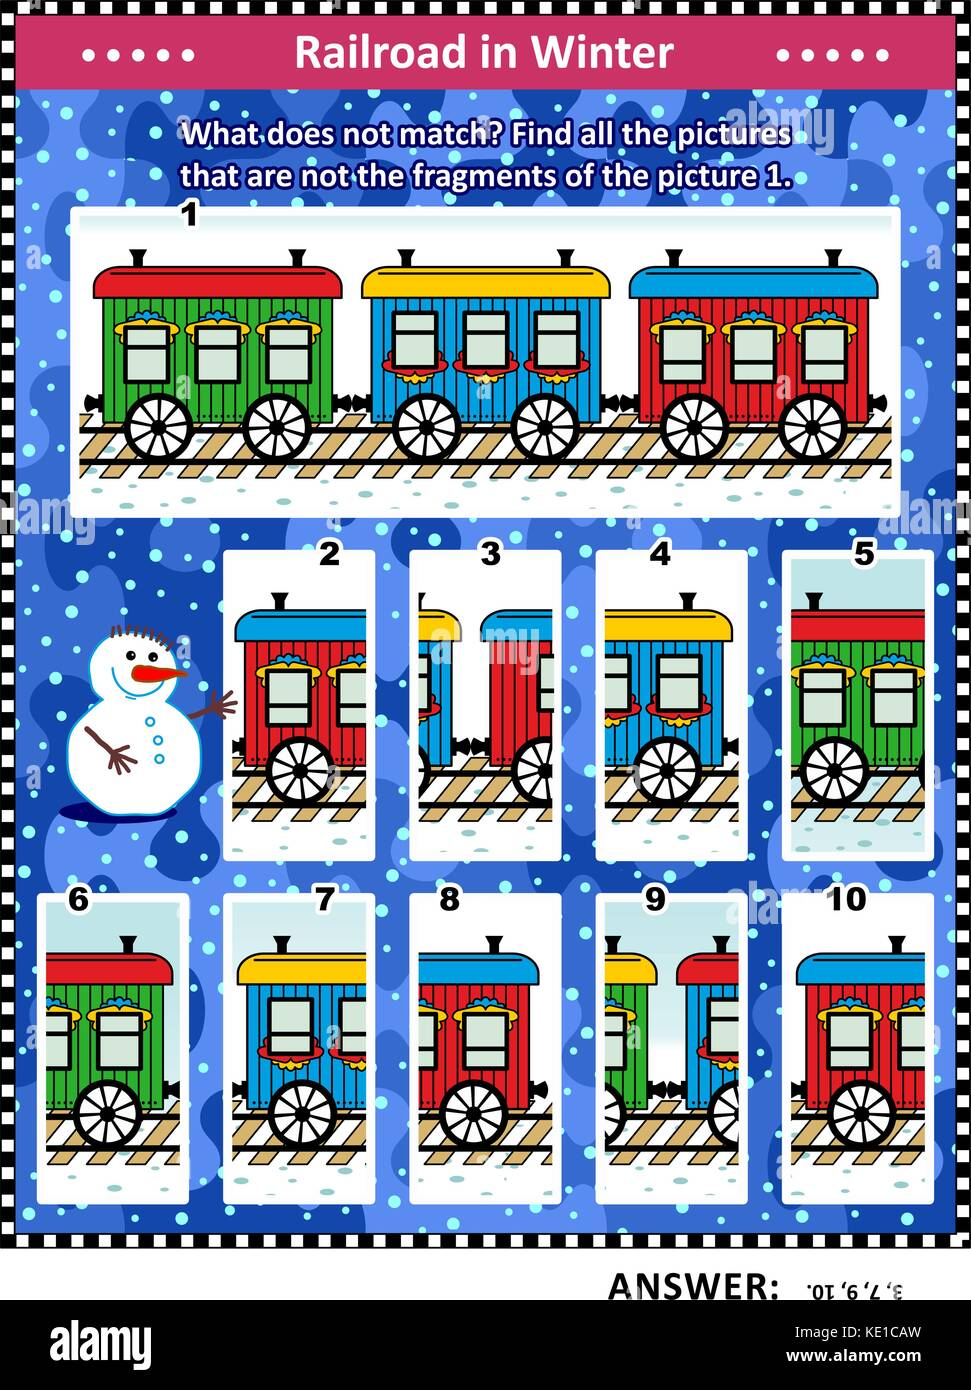 IQ training visual puzzle (suitable both for kids and adults) with retro train cars in snowfall: Find all the pictures - Stock Image